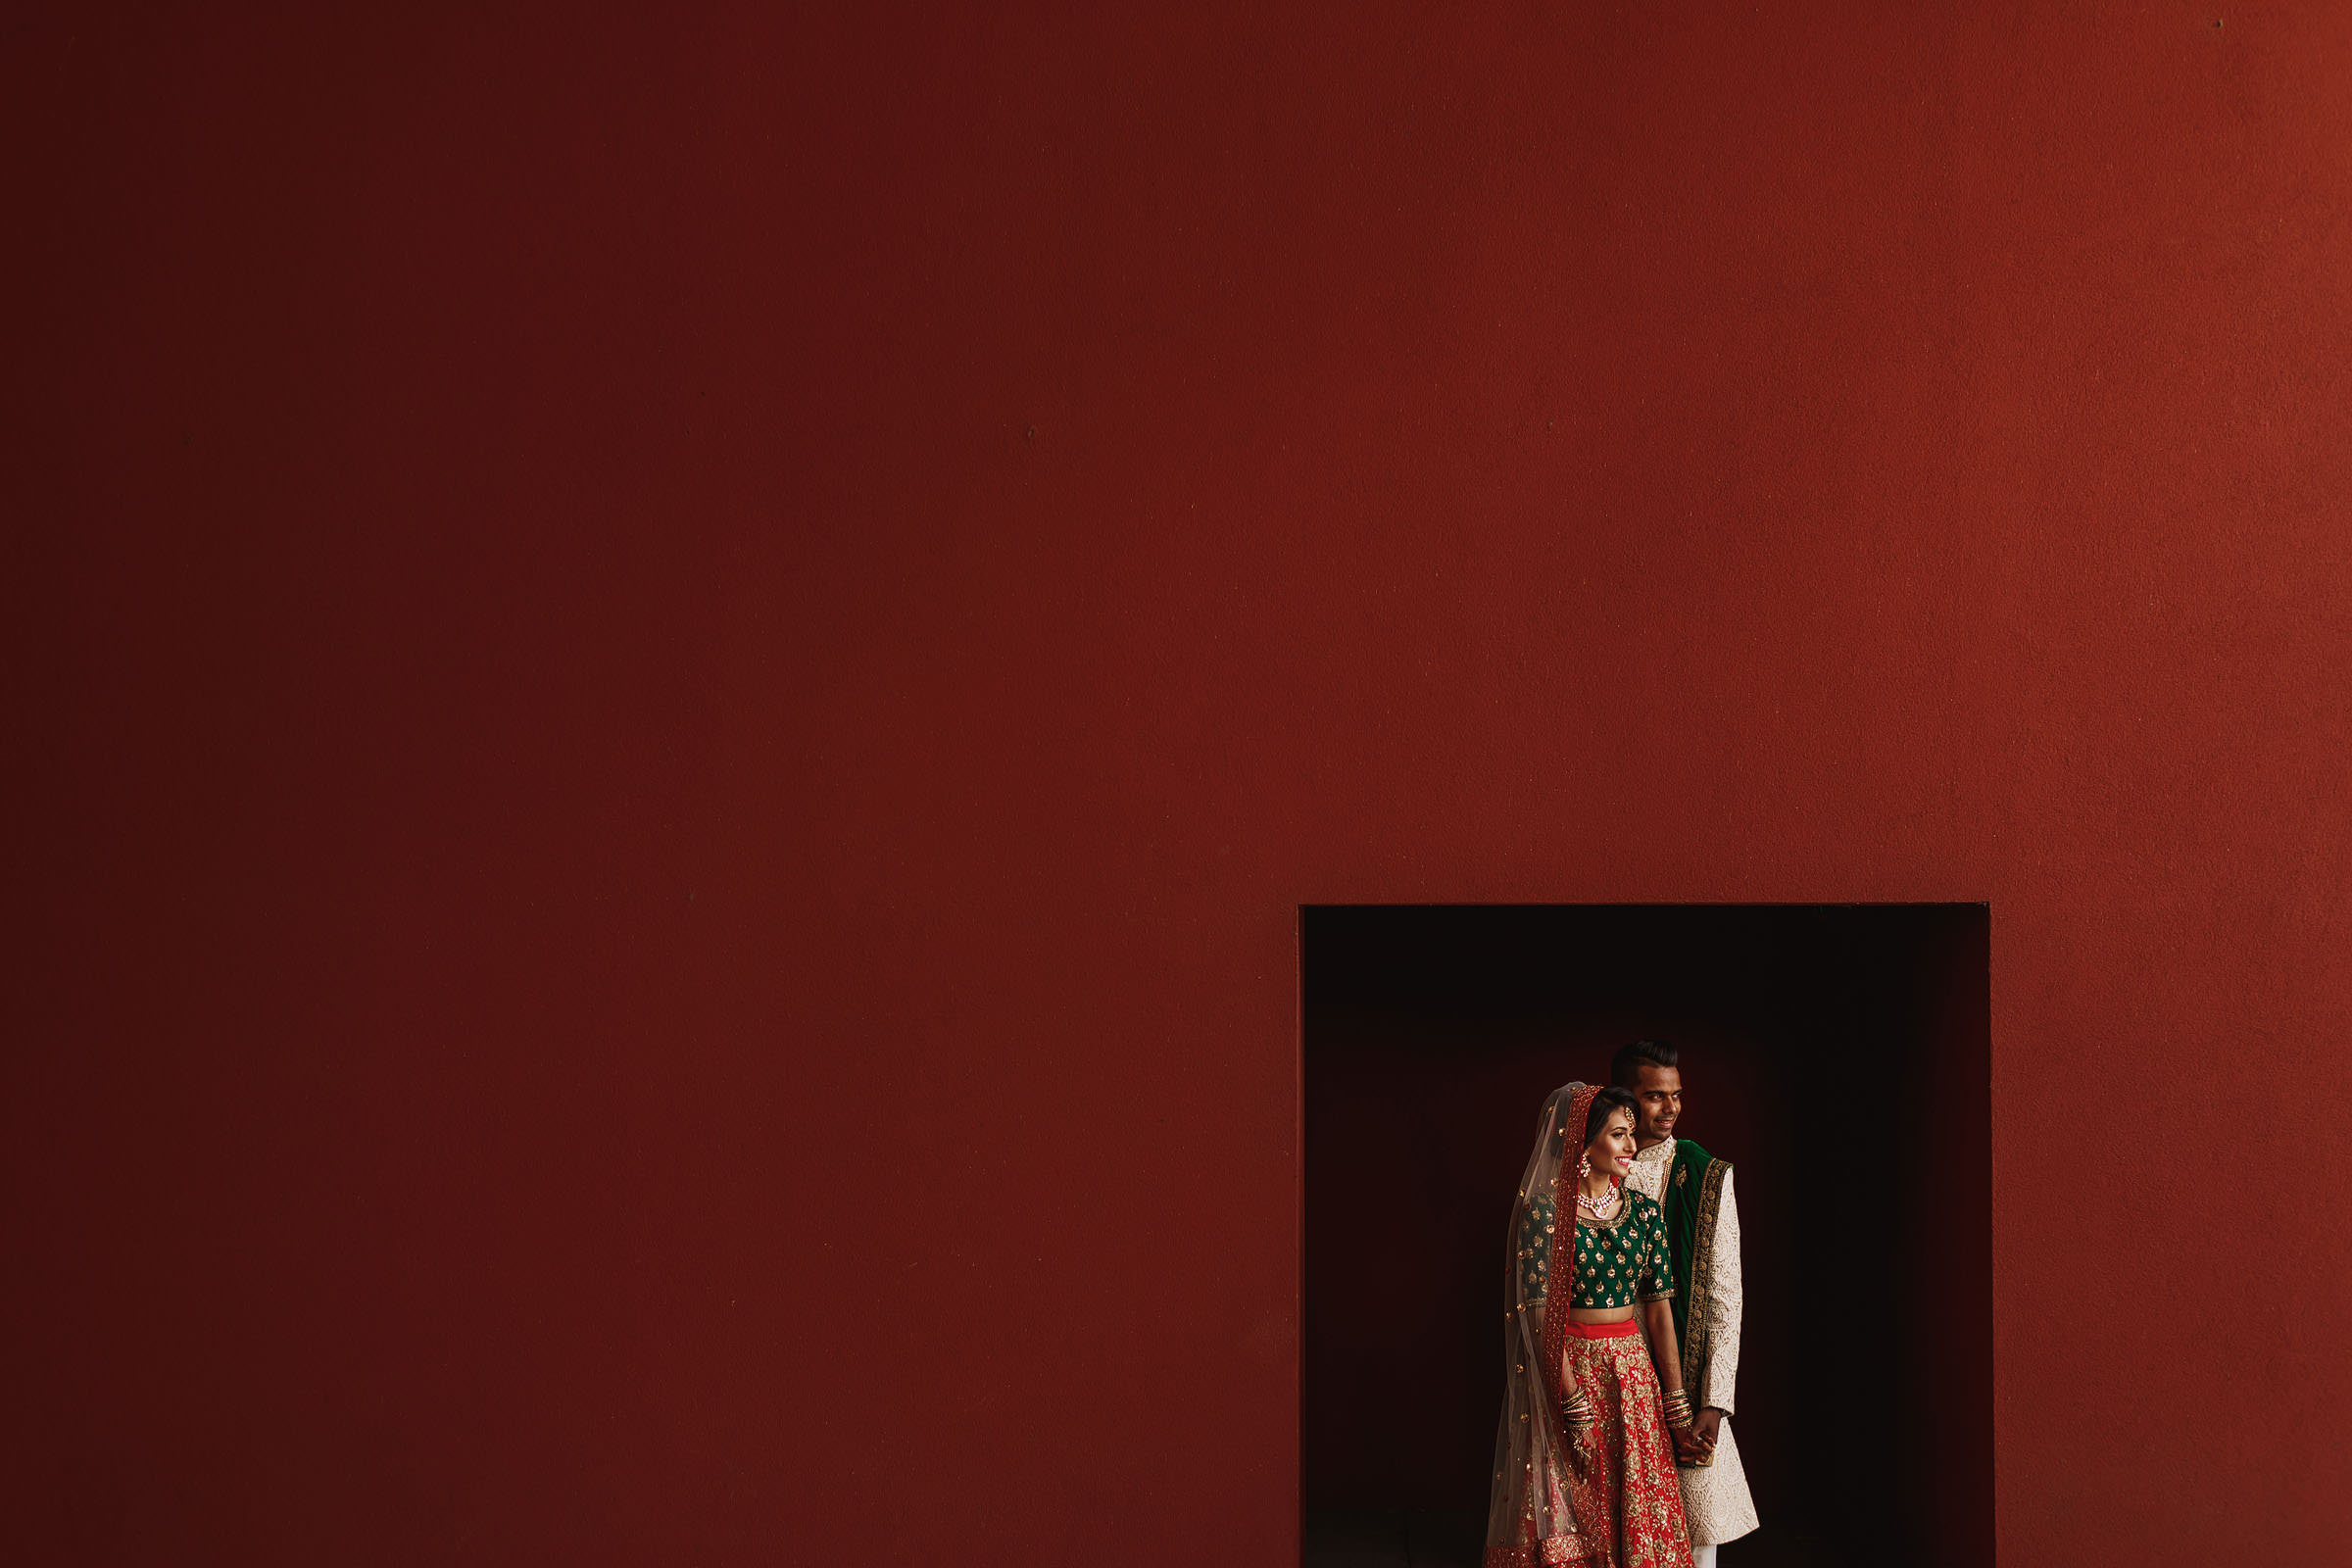 Couple in doorway against red wall - Photo by F5 Photography